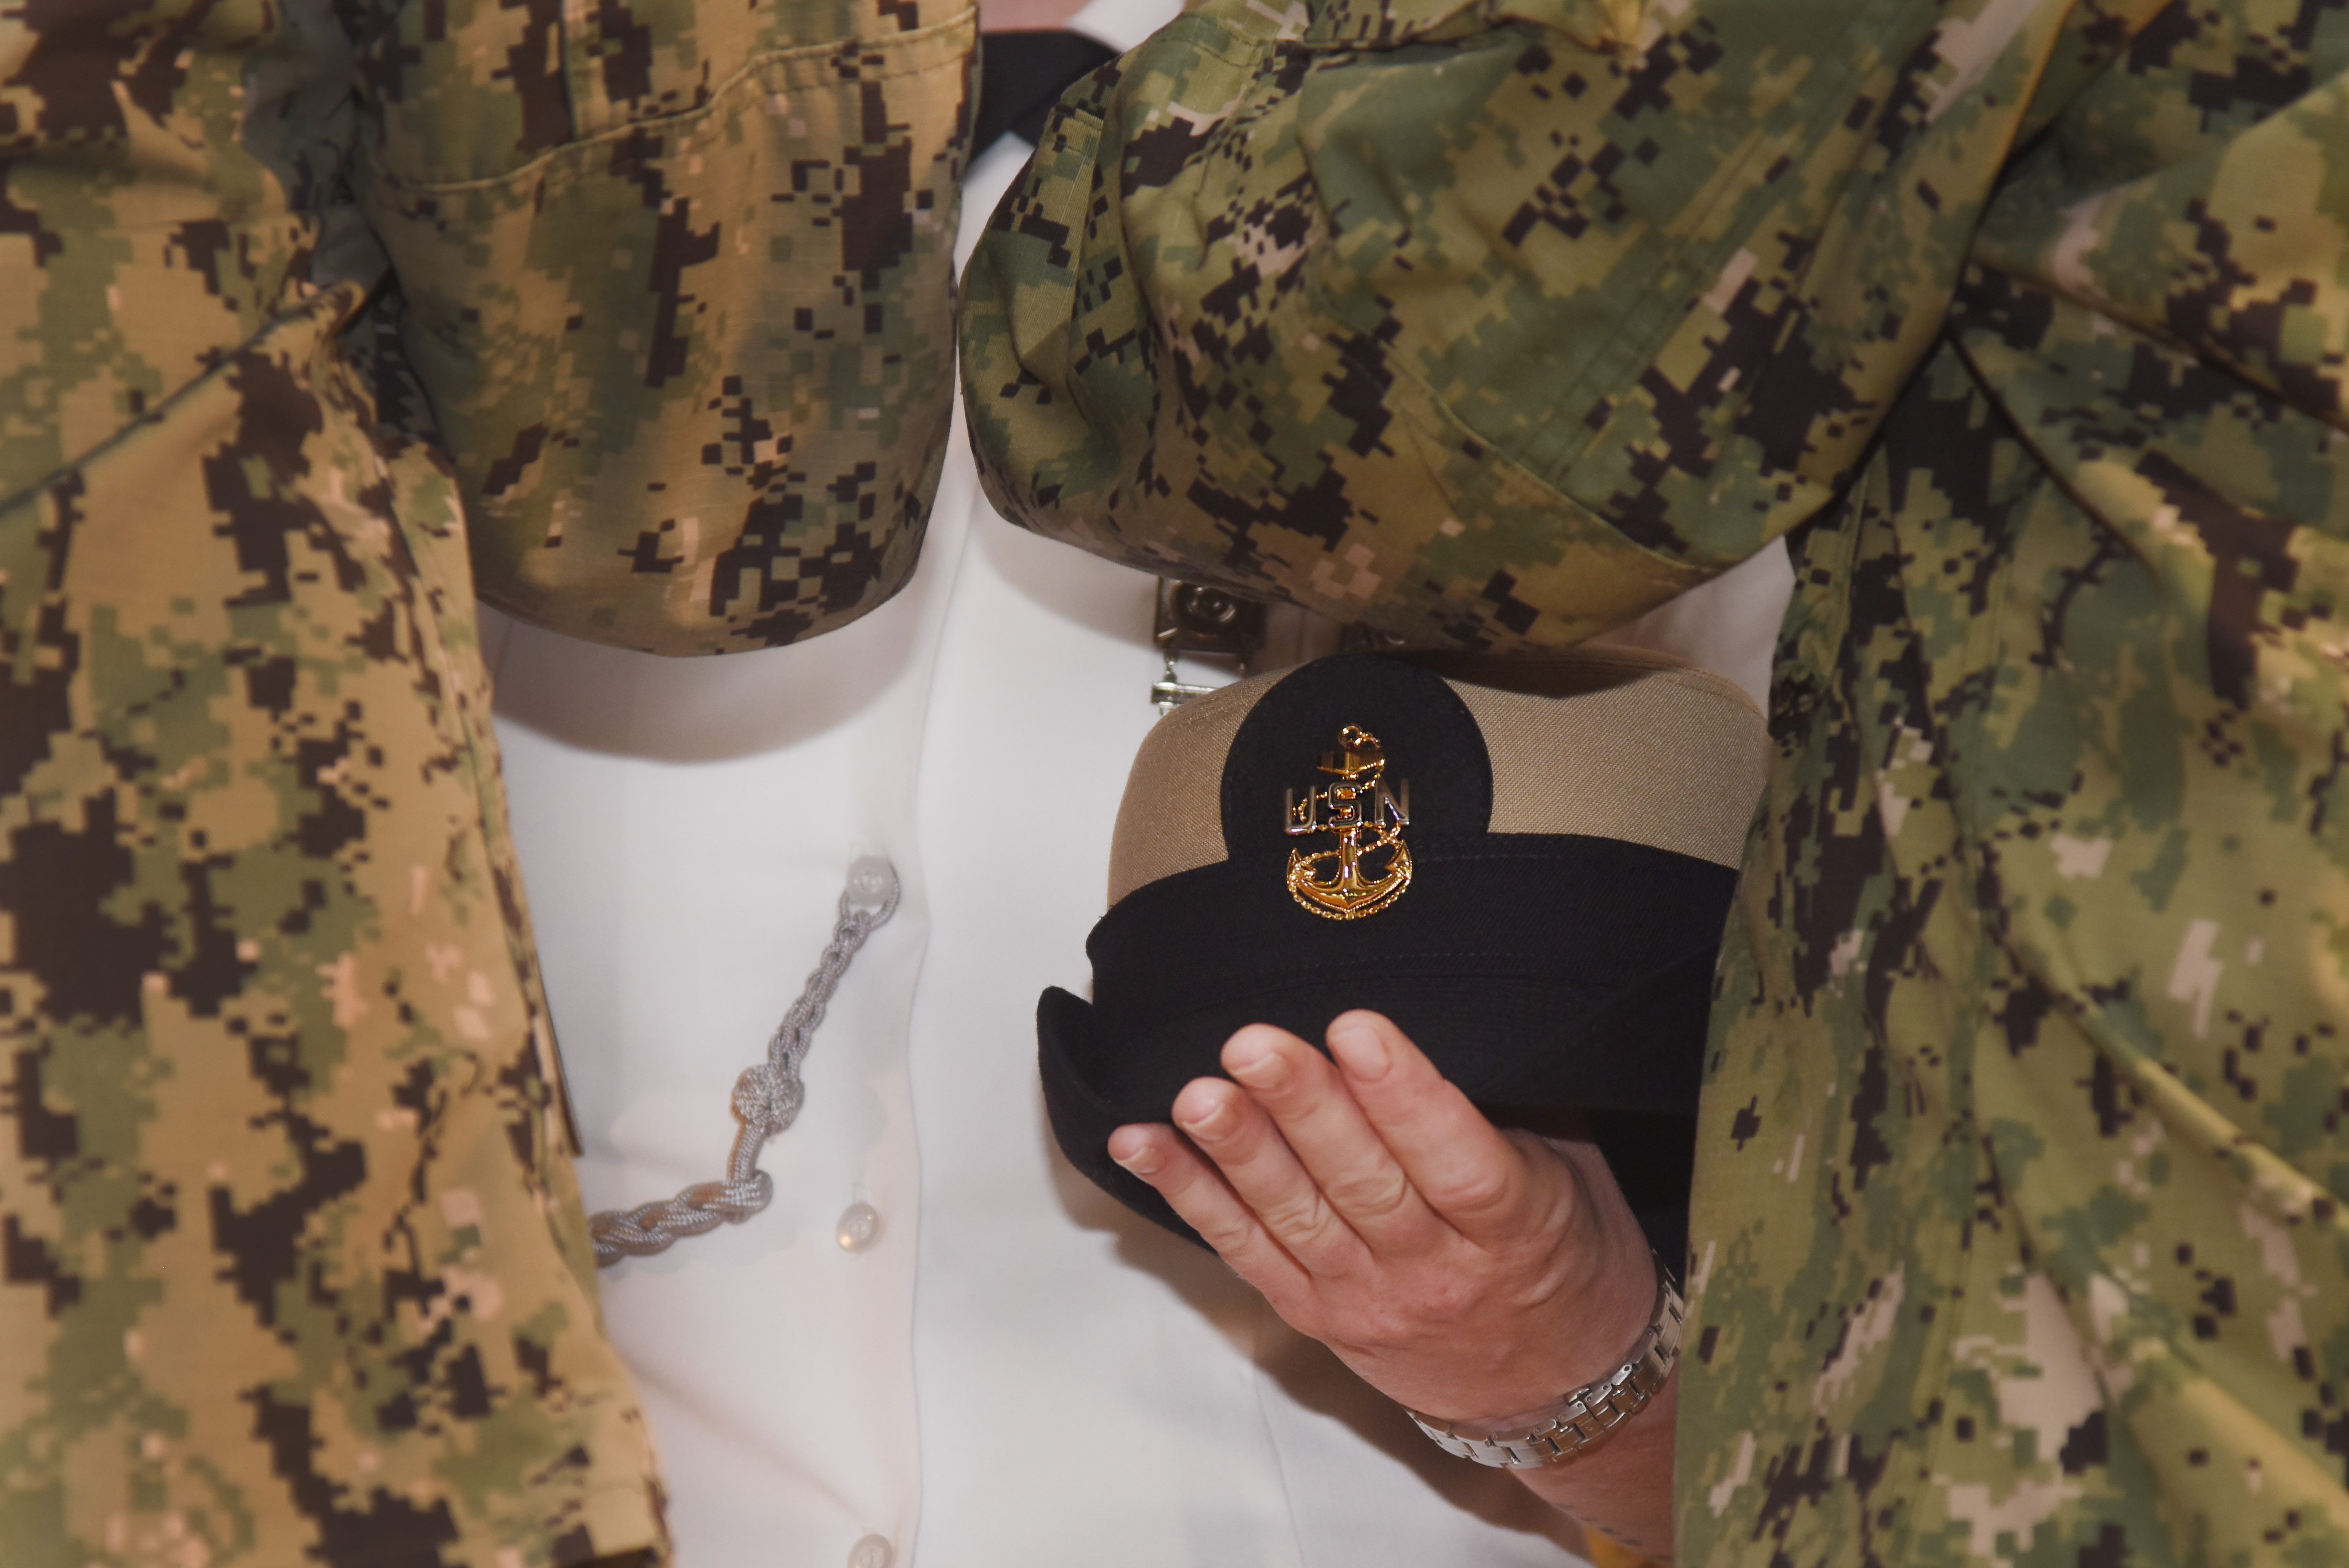 U.S. Army Sgt. 1st Class Heather Wright, receives an anchor, symbolizing her status as an honorary member of Camp Lemonnier's Chief Petty Officers Mess, during a pinning ceremony at Camp Lemonnier, Djibouti, Sept. 16, 2015.  The two-month Navy Chief Petty Officer 365 Phase Two season develops new chief petty officers through challenging mental and physical activities. (U.S. Air Force photo by Staff Sgt. Maria Bowman)